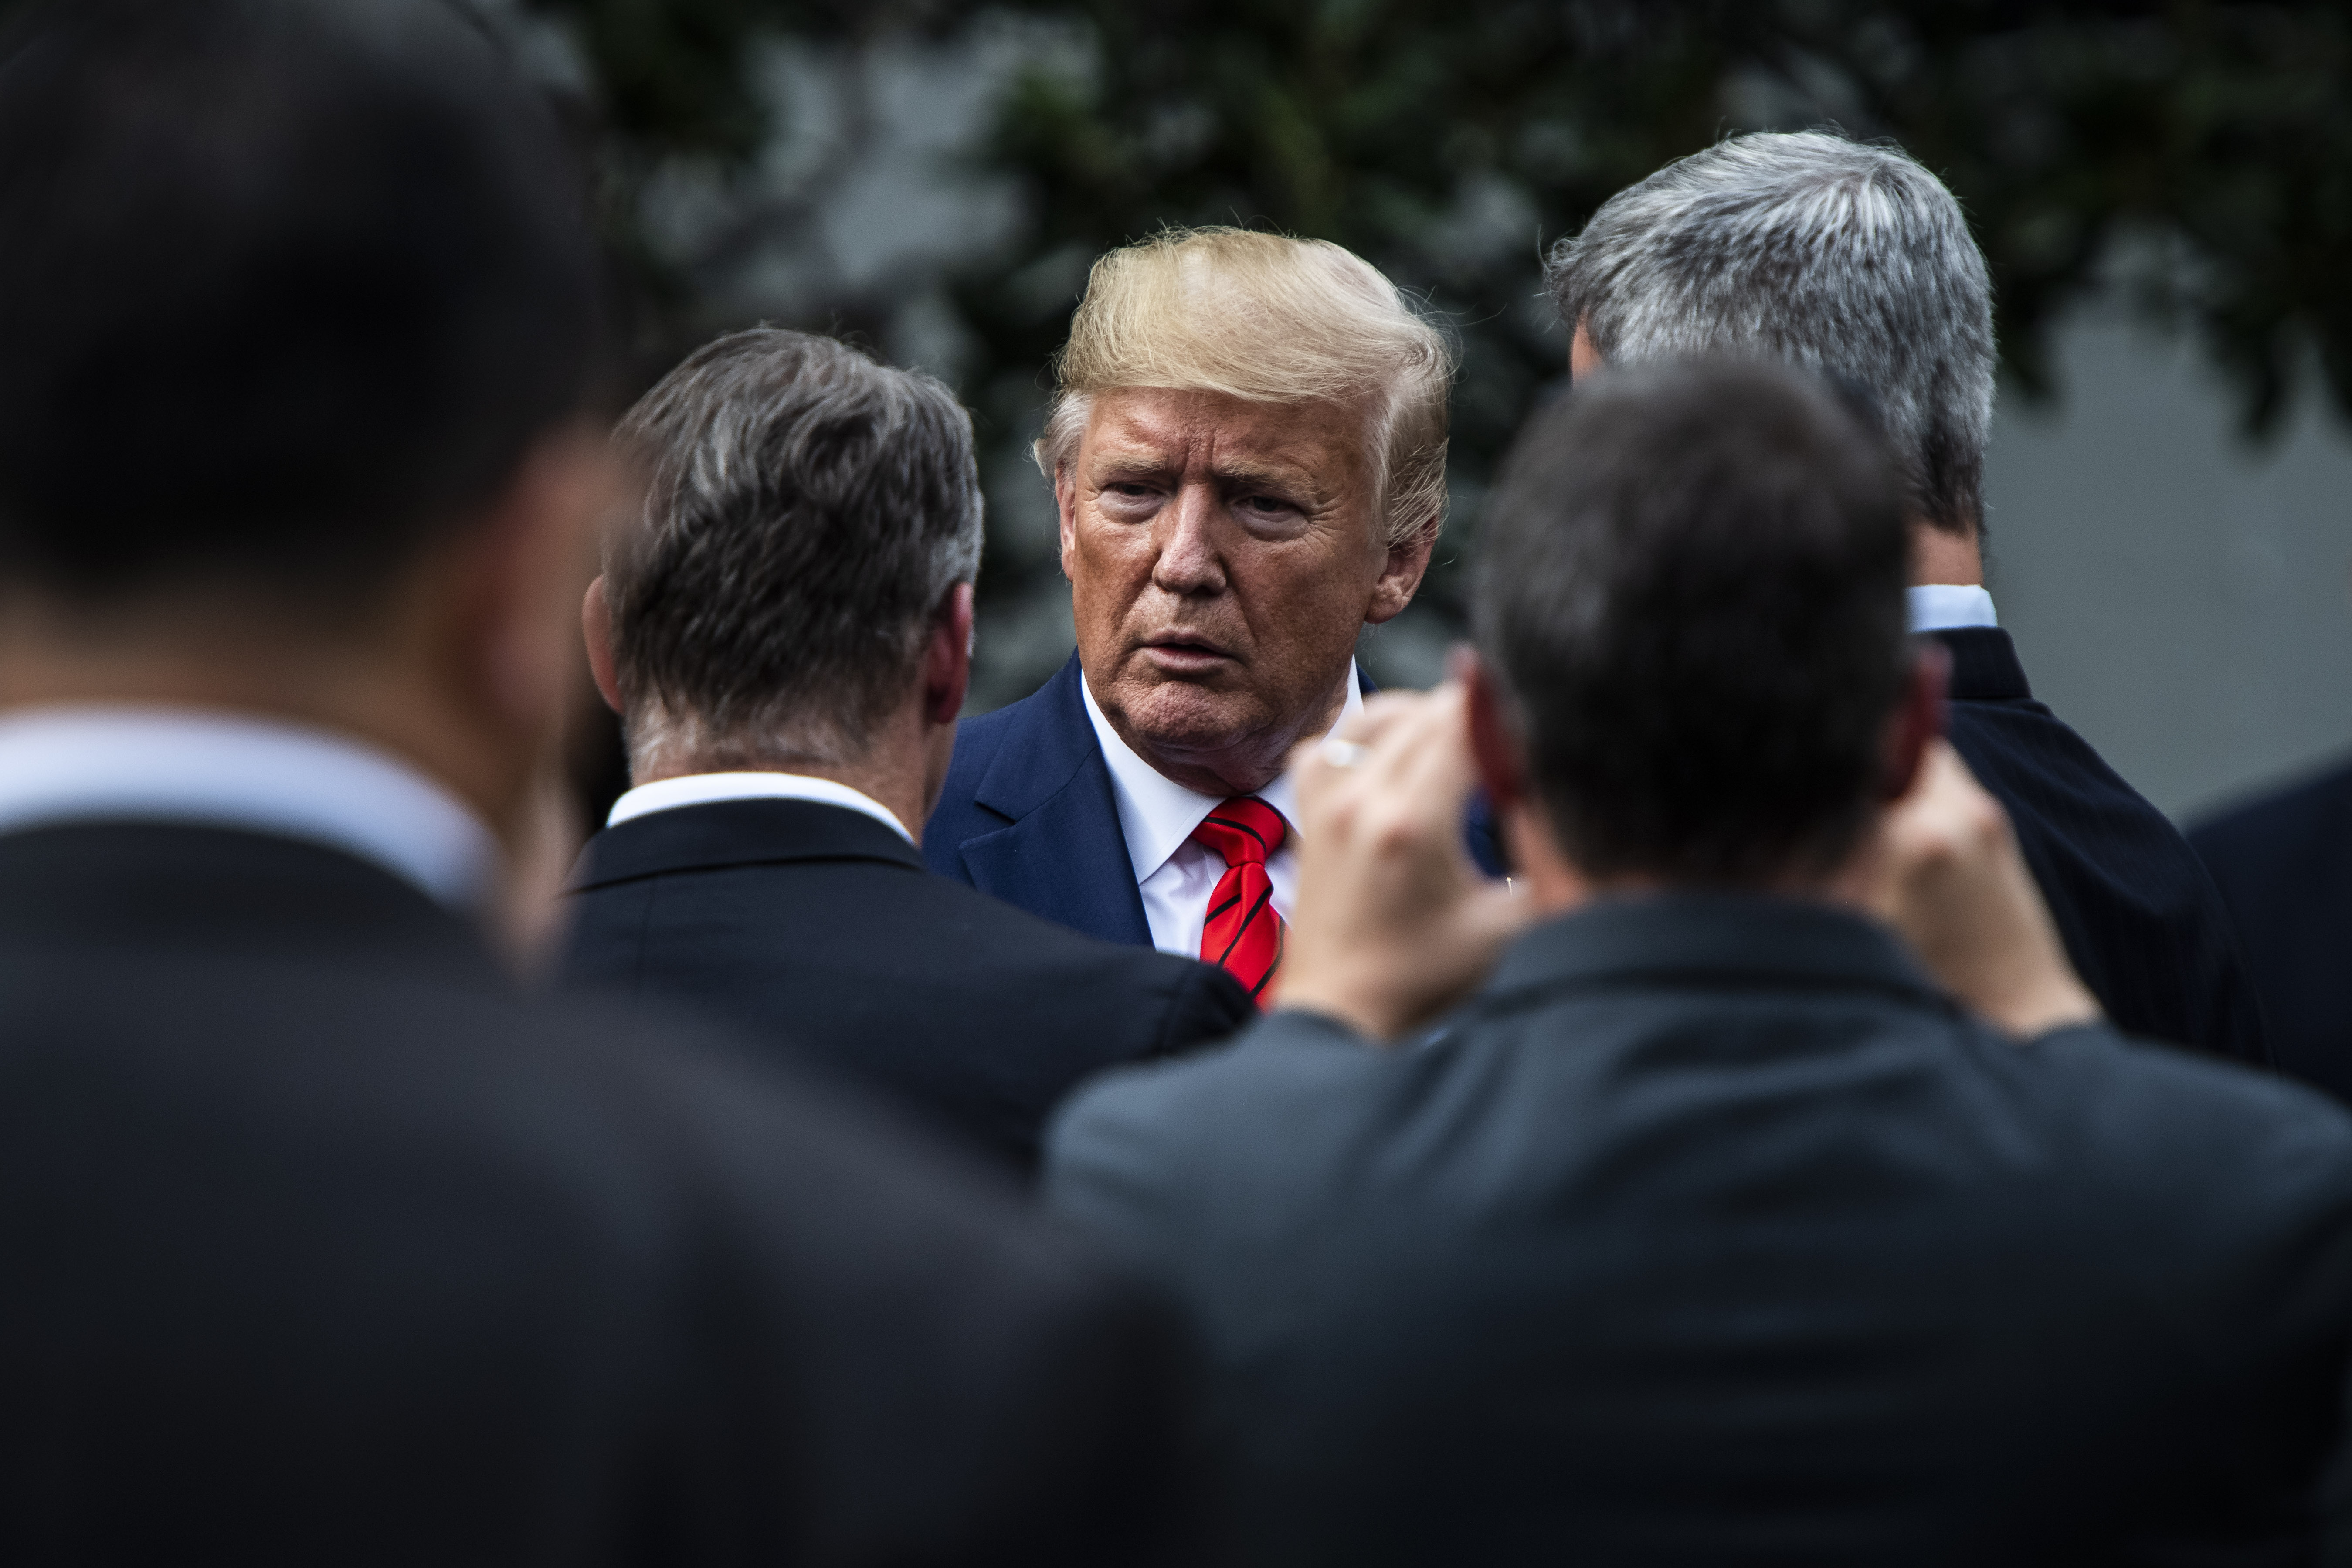 President Donald Trump talks to others as he walks back to the Oval Office of the White House on Thursday, Sept 26, 2019 in Washington, DC.